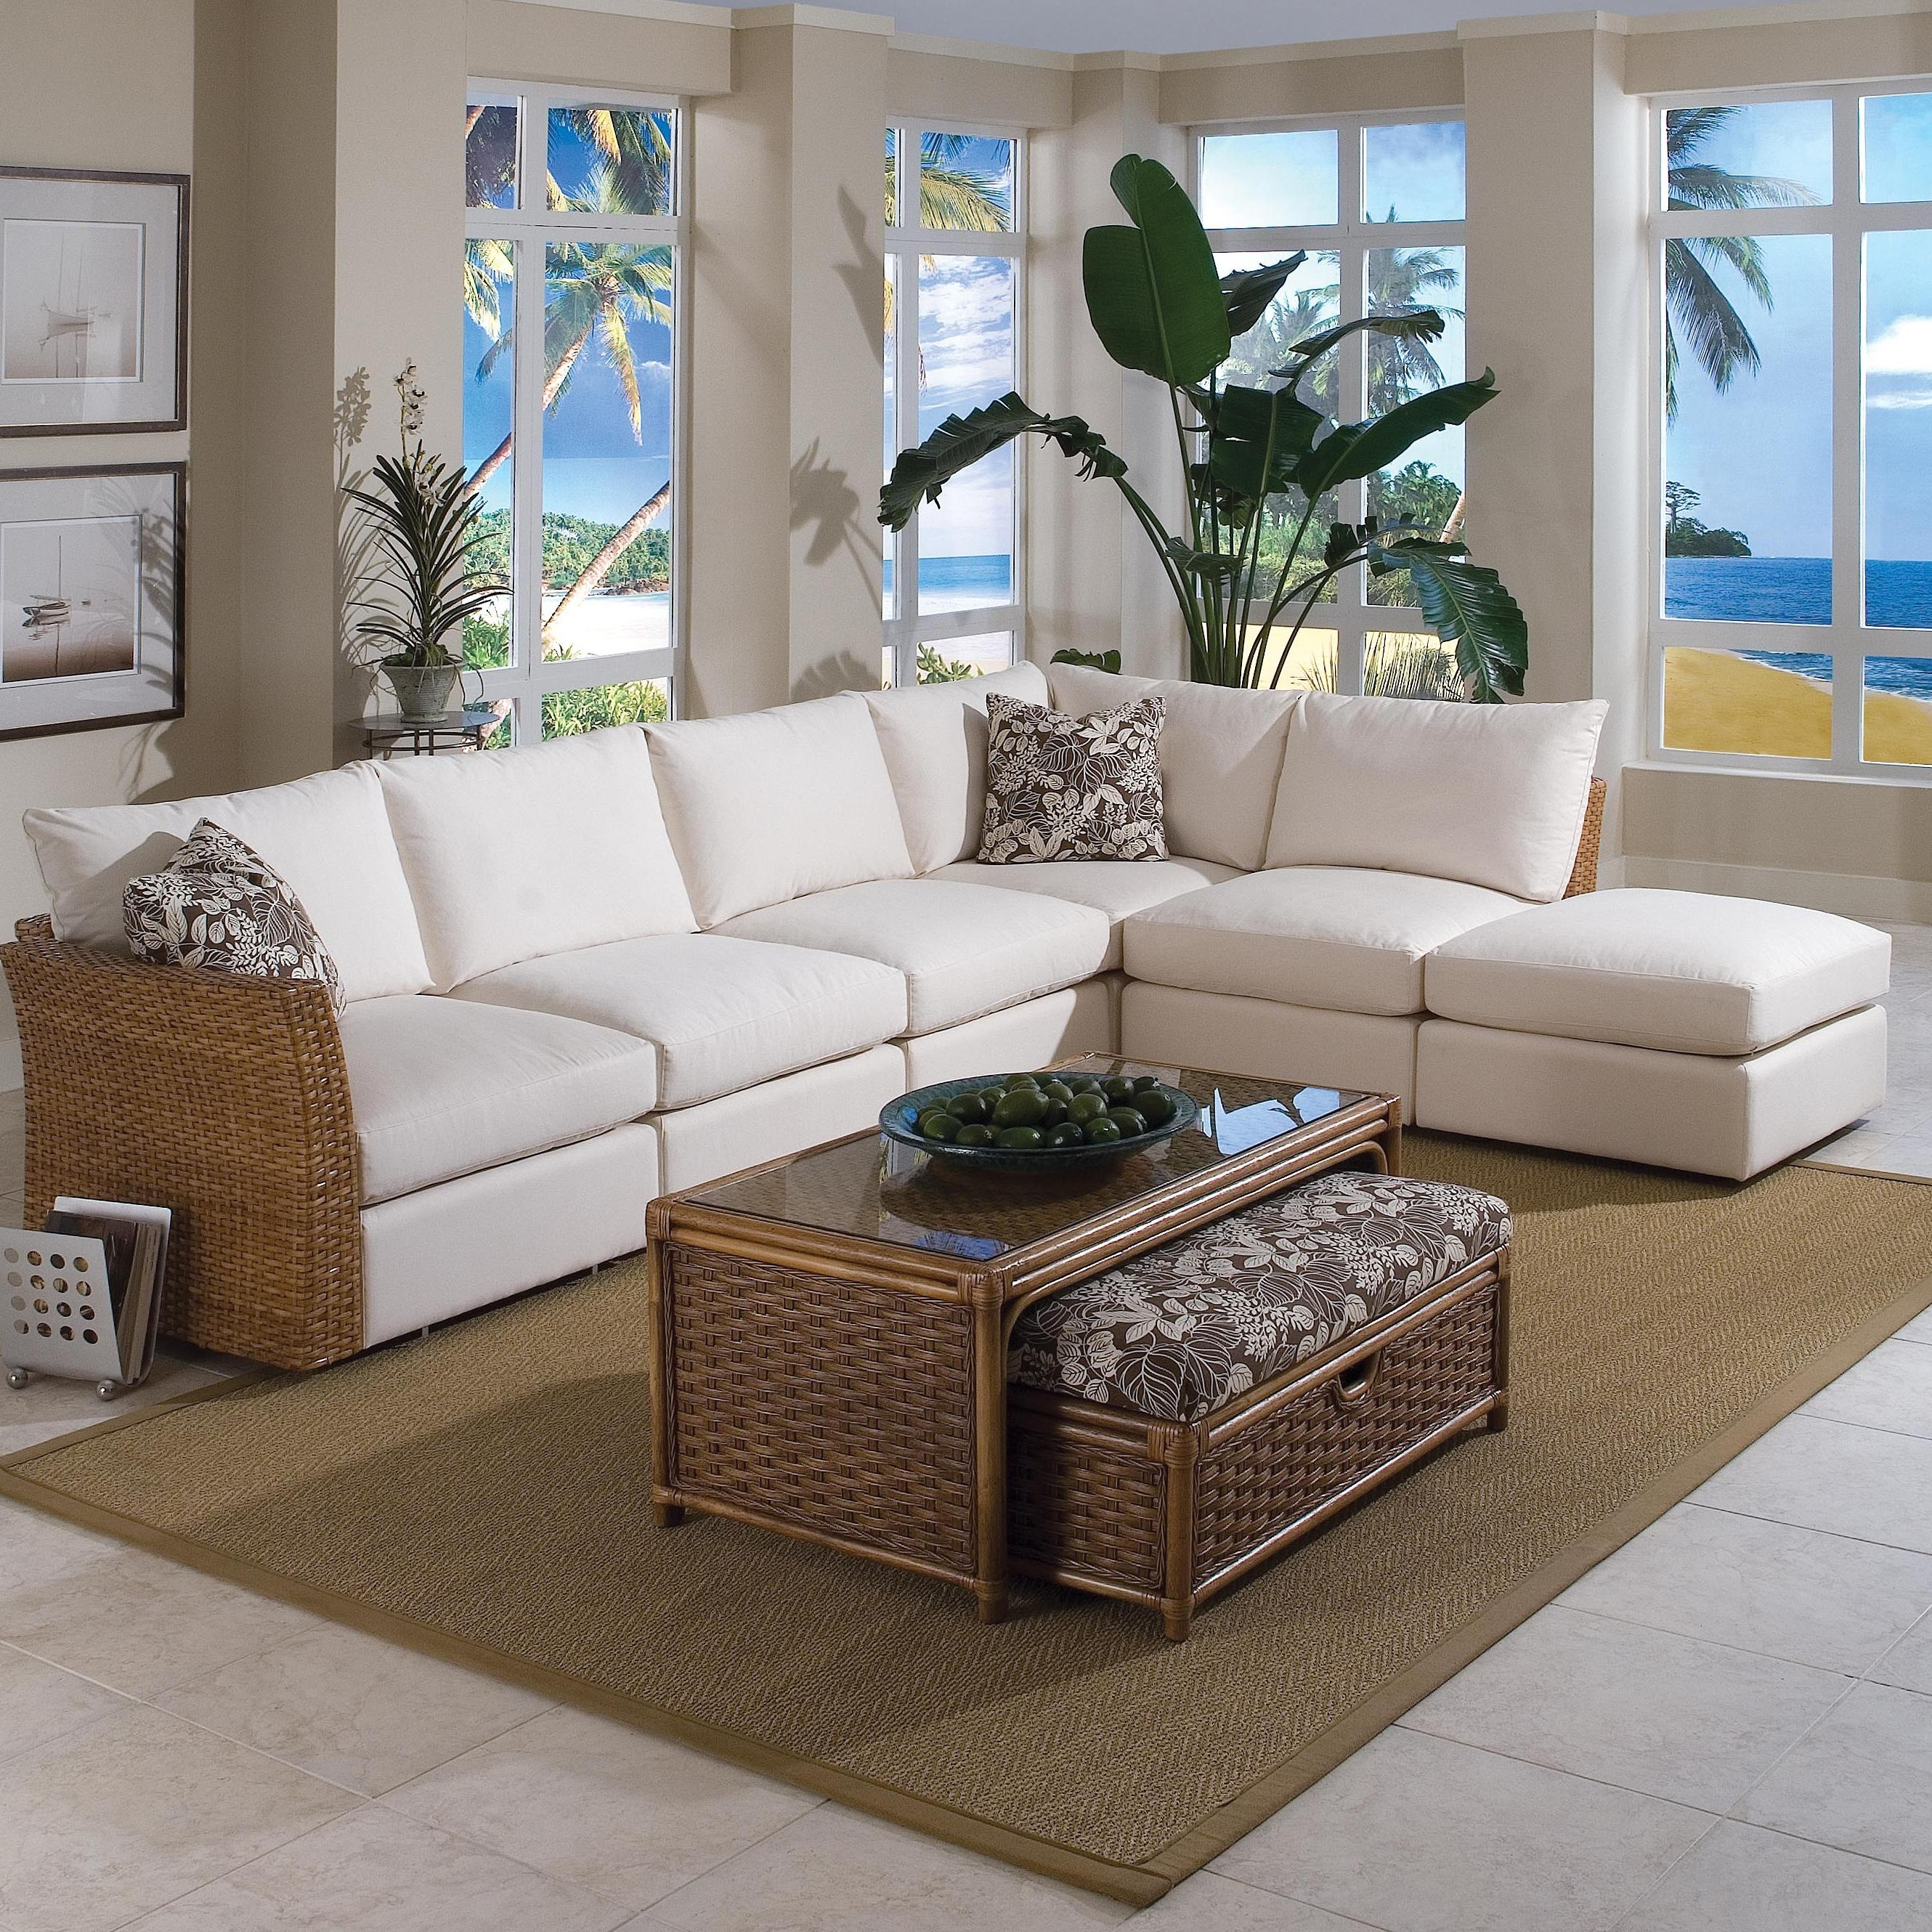 Braxton Culler Grand Water Point Tropical Sectional Sofa With Two Within Most Recently Released Grand Furniture Sectional Sofas (View 4 of 15)